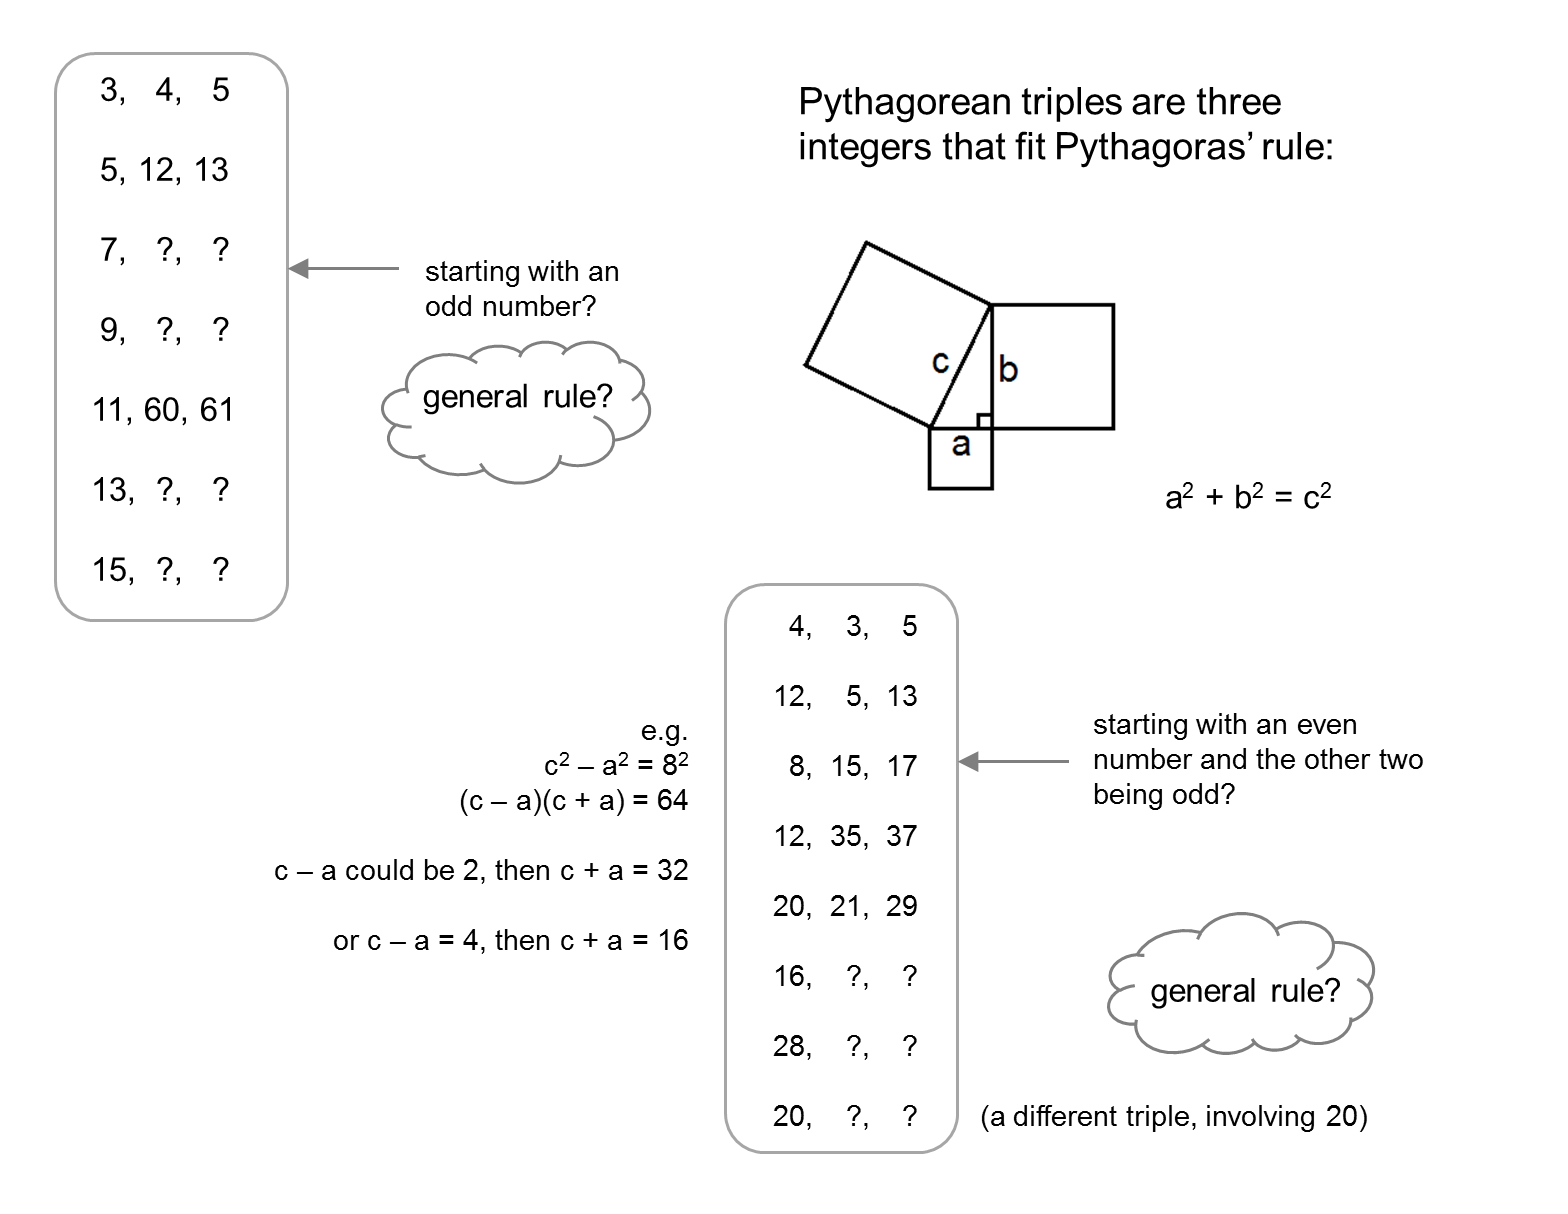 Printables Pythagorean Triples Worksheet pythagorean triples worksheet woodleyshailene resourceaholic pythagoras 39 theorem worksheet